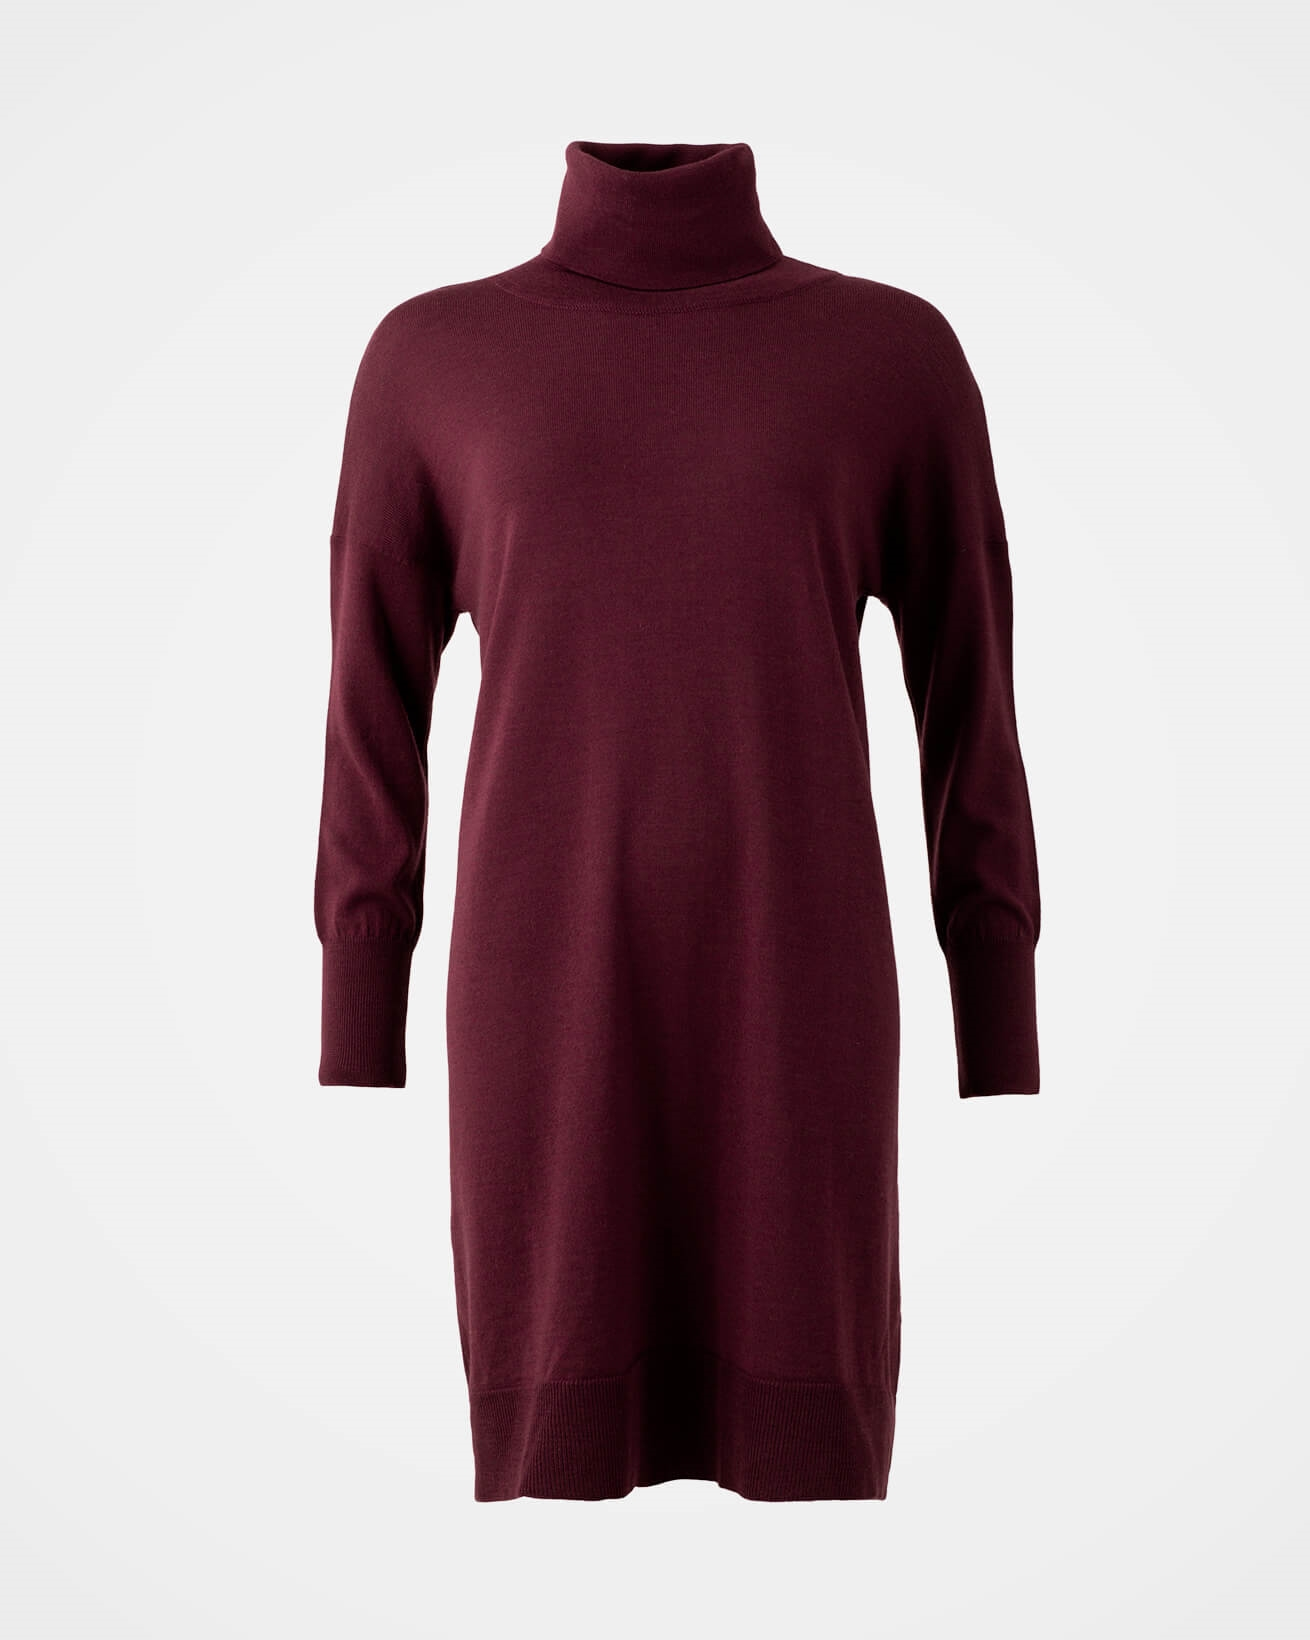 7515_slouchy-merino-roll-neck-dress_sloeberry_front_web.jpg